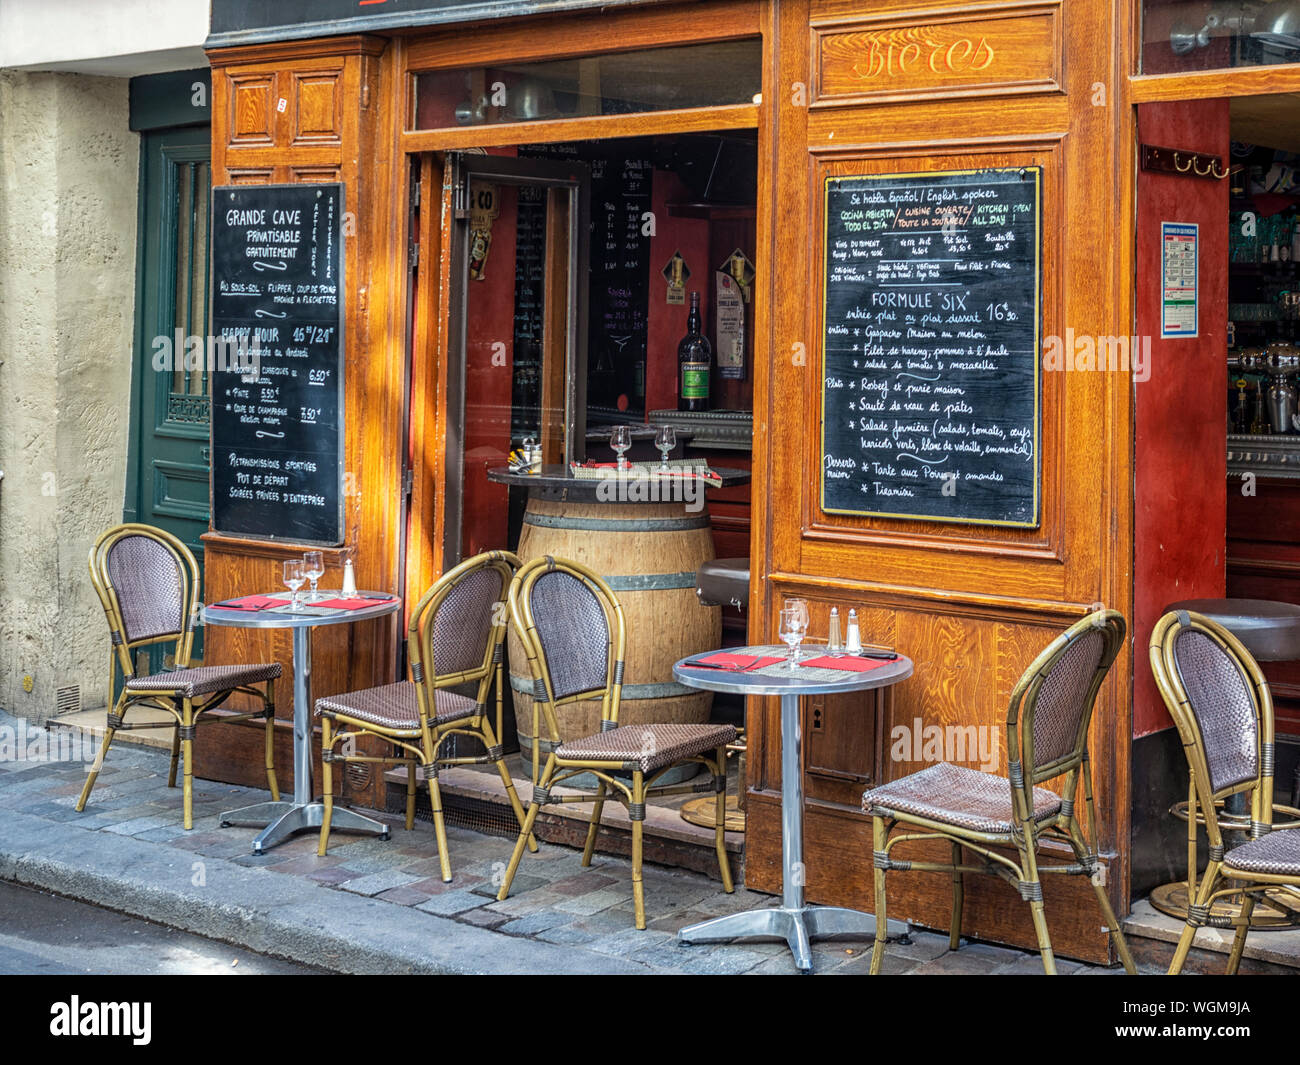 Paris France Tables And Chairs Outside Small Street Cafe Bar Stock Photo Alamy